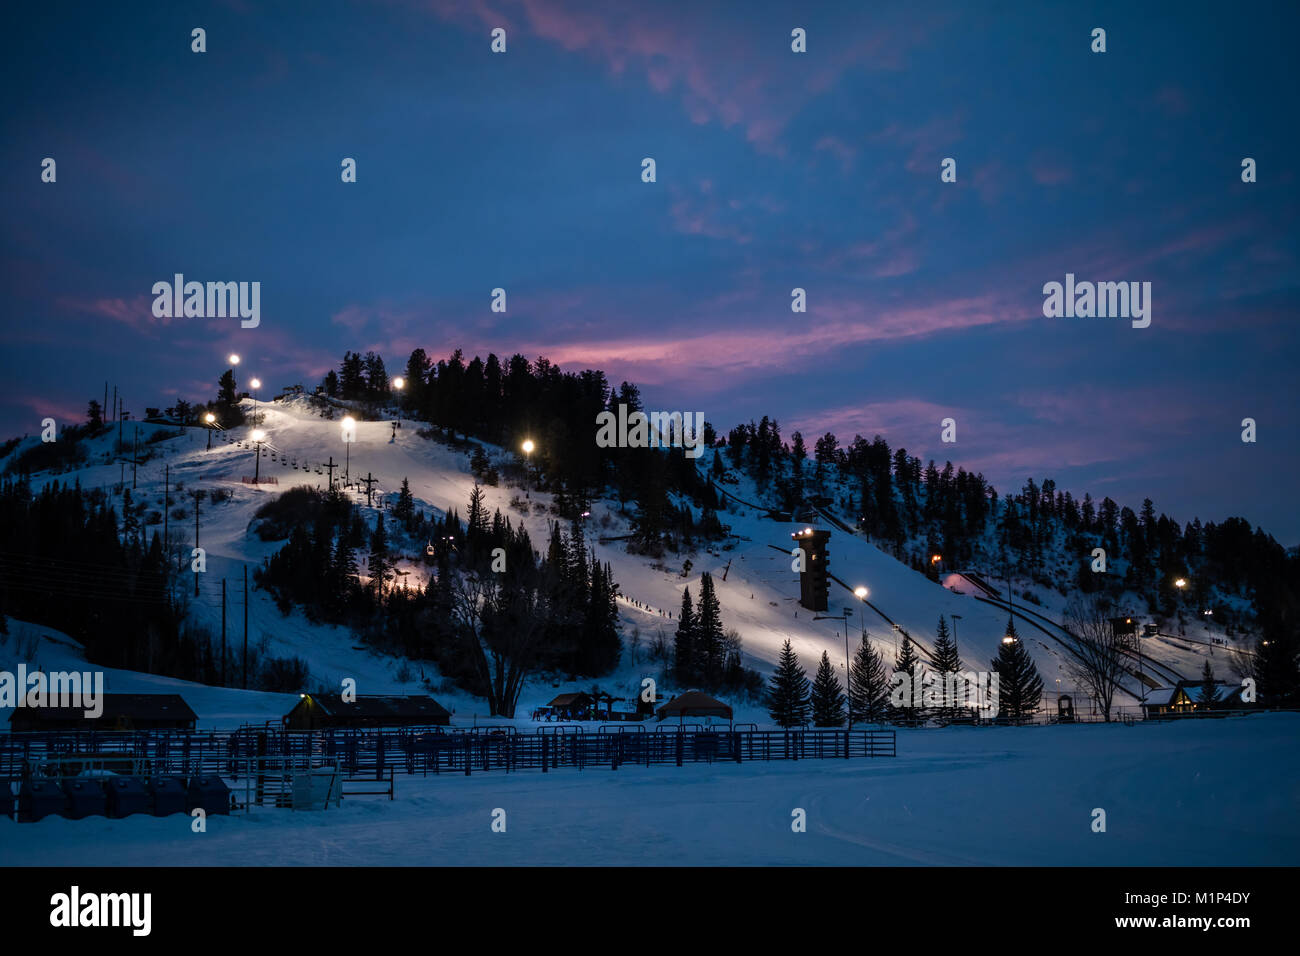 Beautiful view of of a downhill slope lit for night skiing in Steamboat Springs, Colorado, after sunset - Stock Image